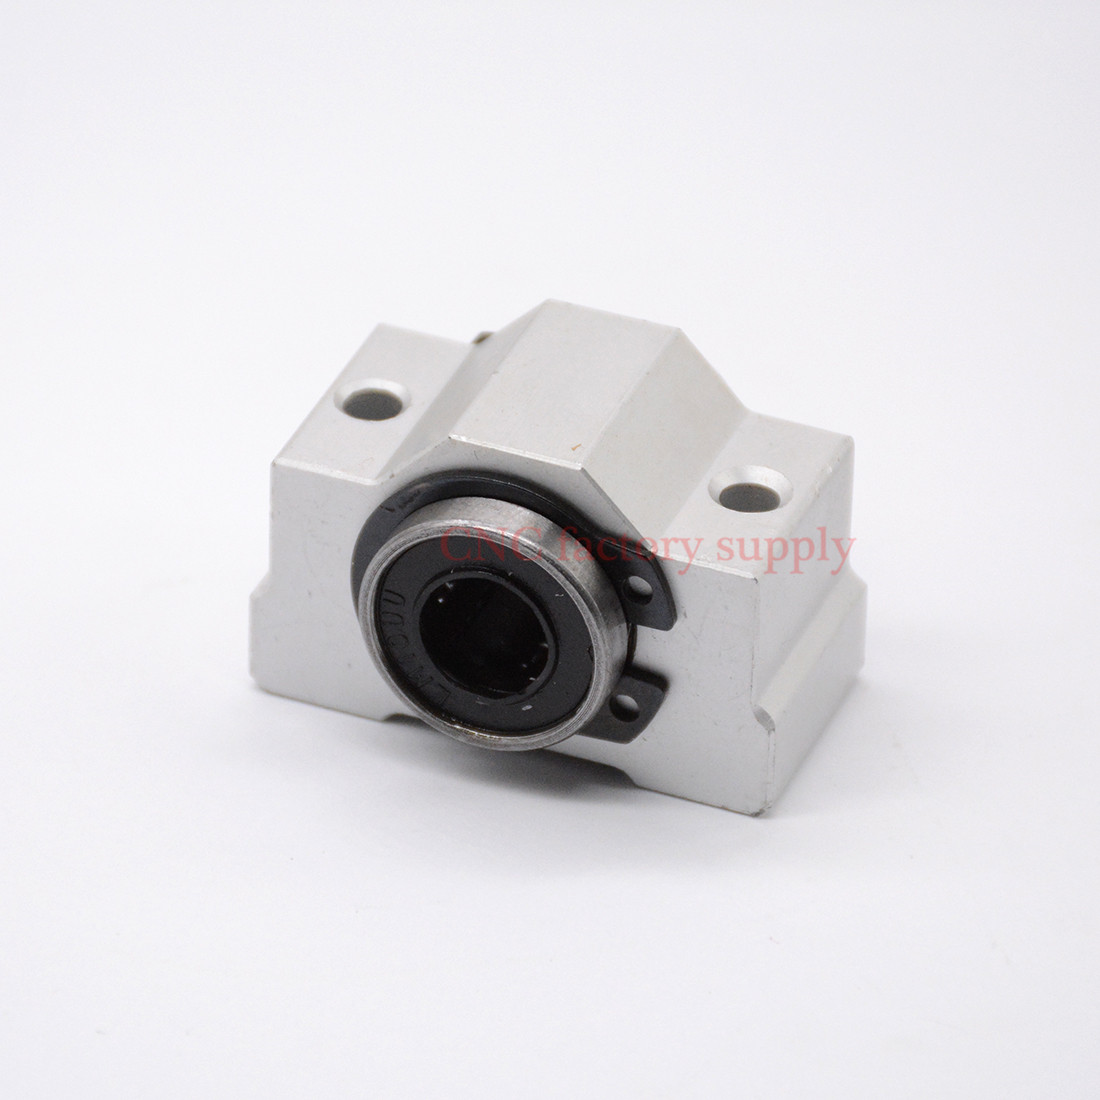 Free shipping SC30VUU SC30V SCV30UU SCV30 30mm linear bearing block DIY linear slide bearing units CNC router free shipping sc16vuu sc16v scv16uu scv16 16mm linear bearing block diy linear slide bearing units cnc router